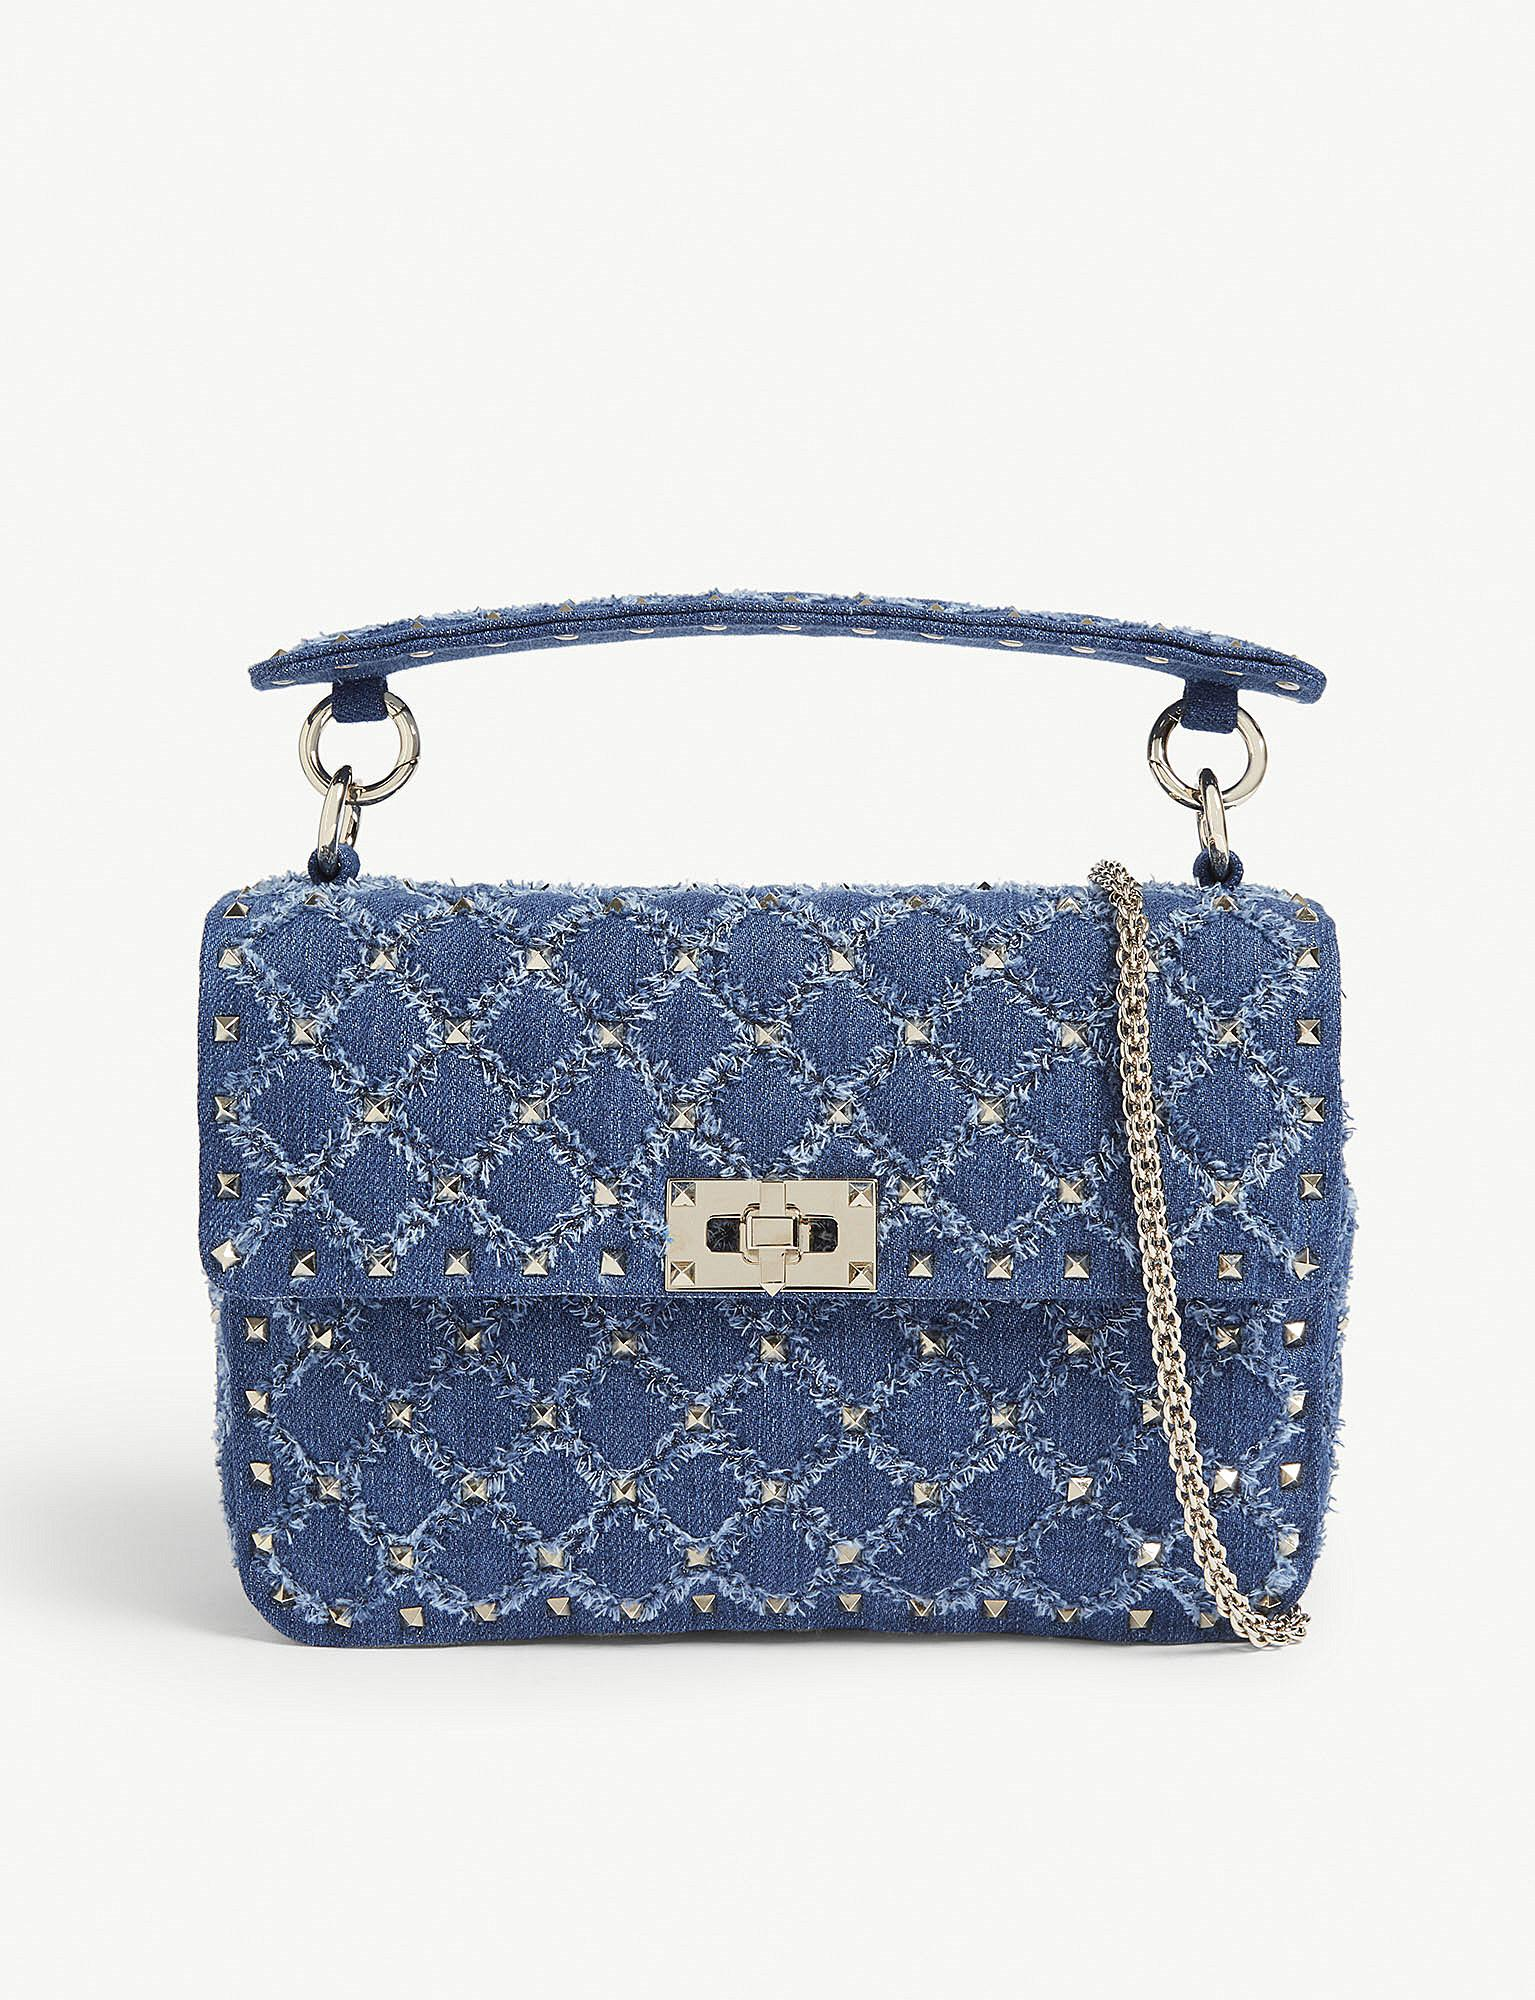 3f2e3882a203 Lyst - Valentino Rockstud Spike Medium Denim Shoulder Bag in Blue ...